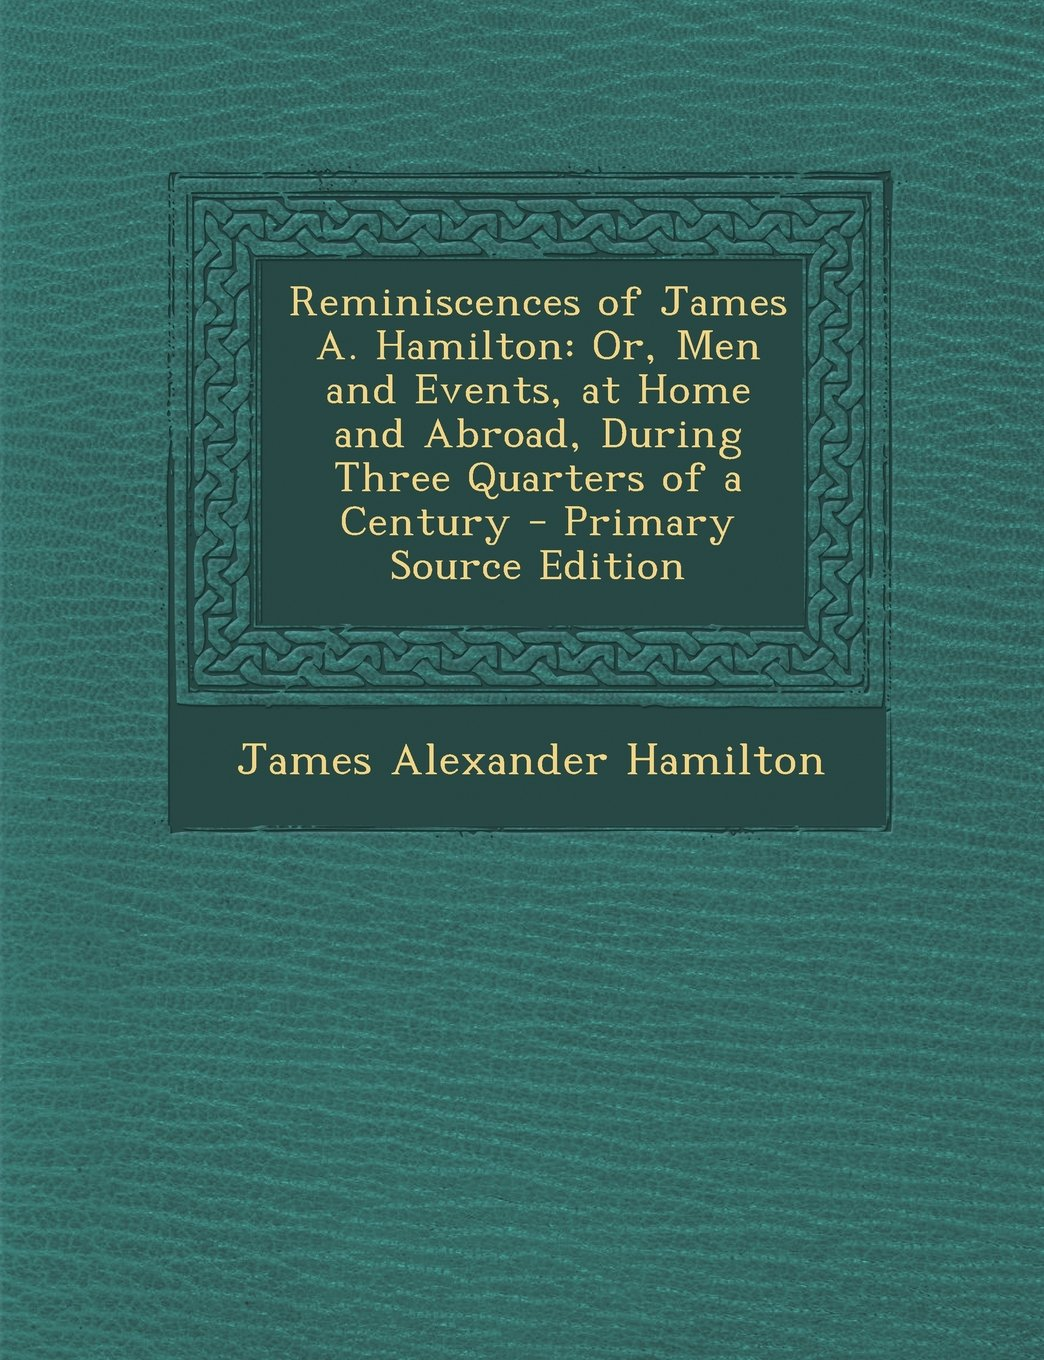 Download Reminiscences of James A. Hamilton: Or, Men and Events, at Home and Abroad, During Three Quarters of a Century - Primary Source Edition ebook